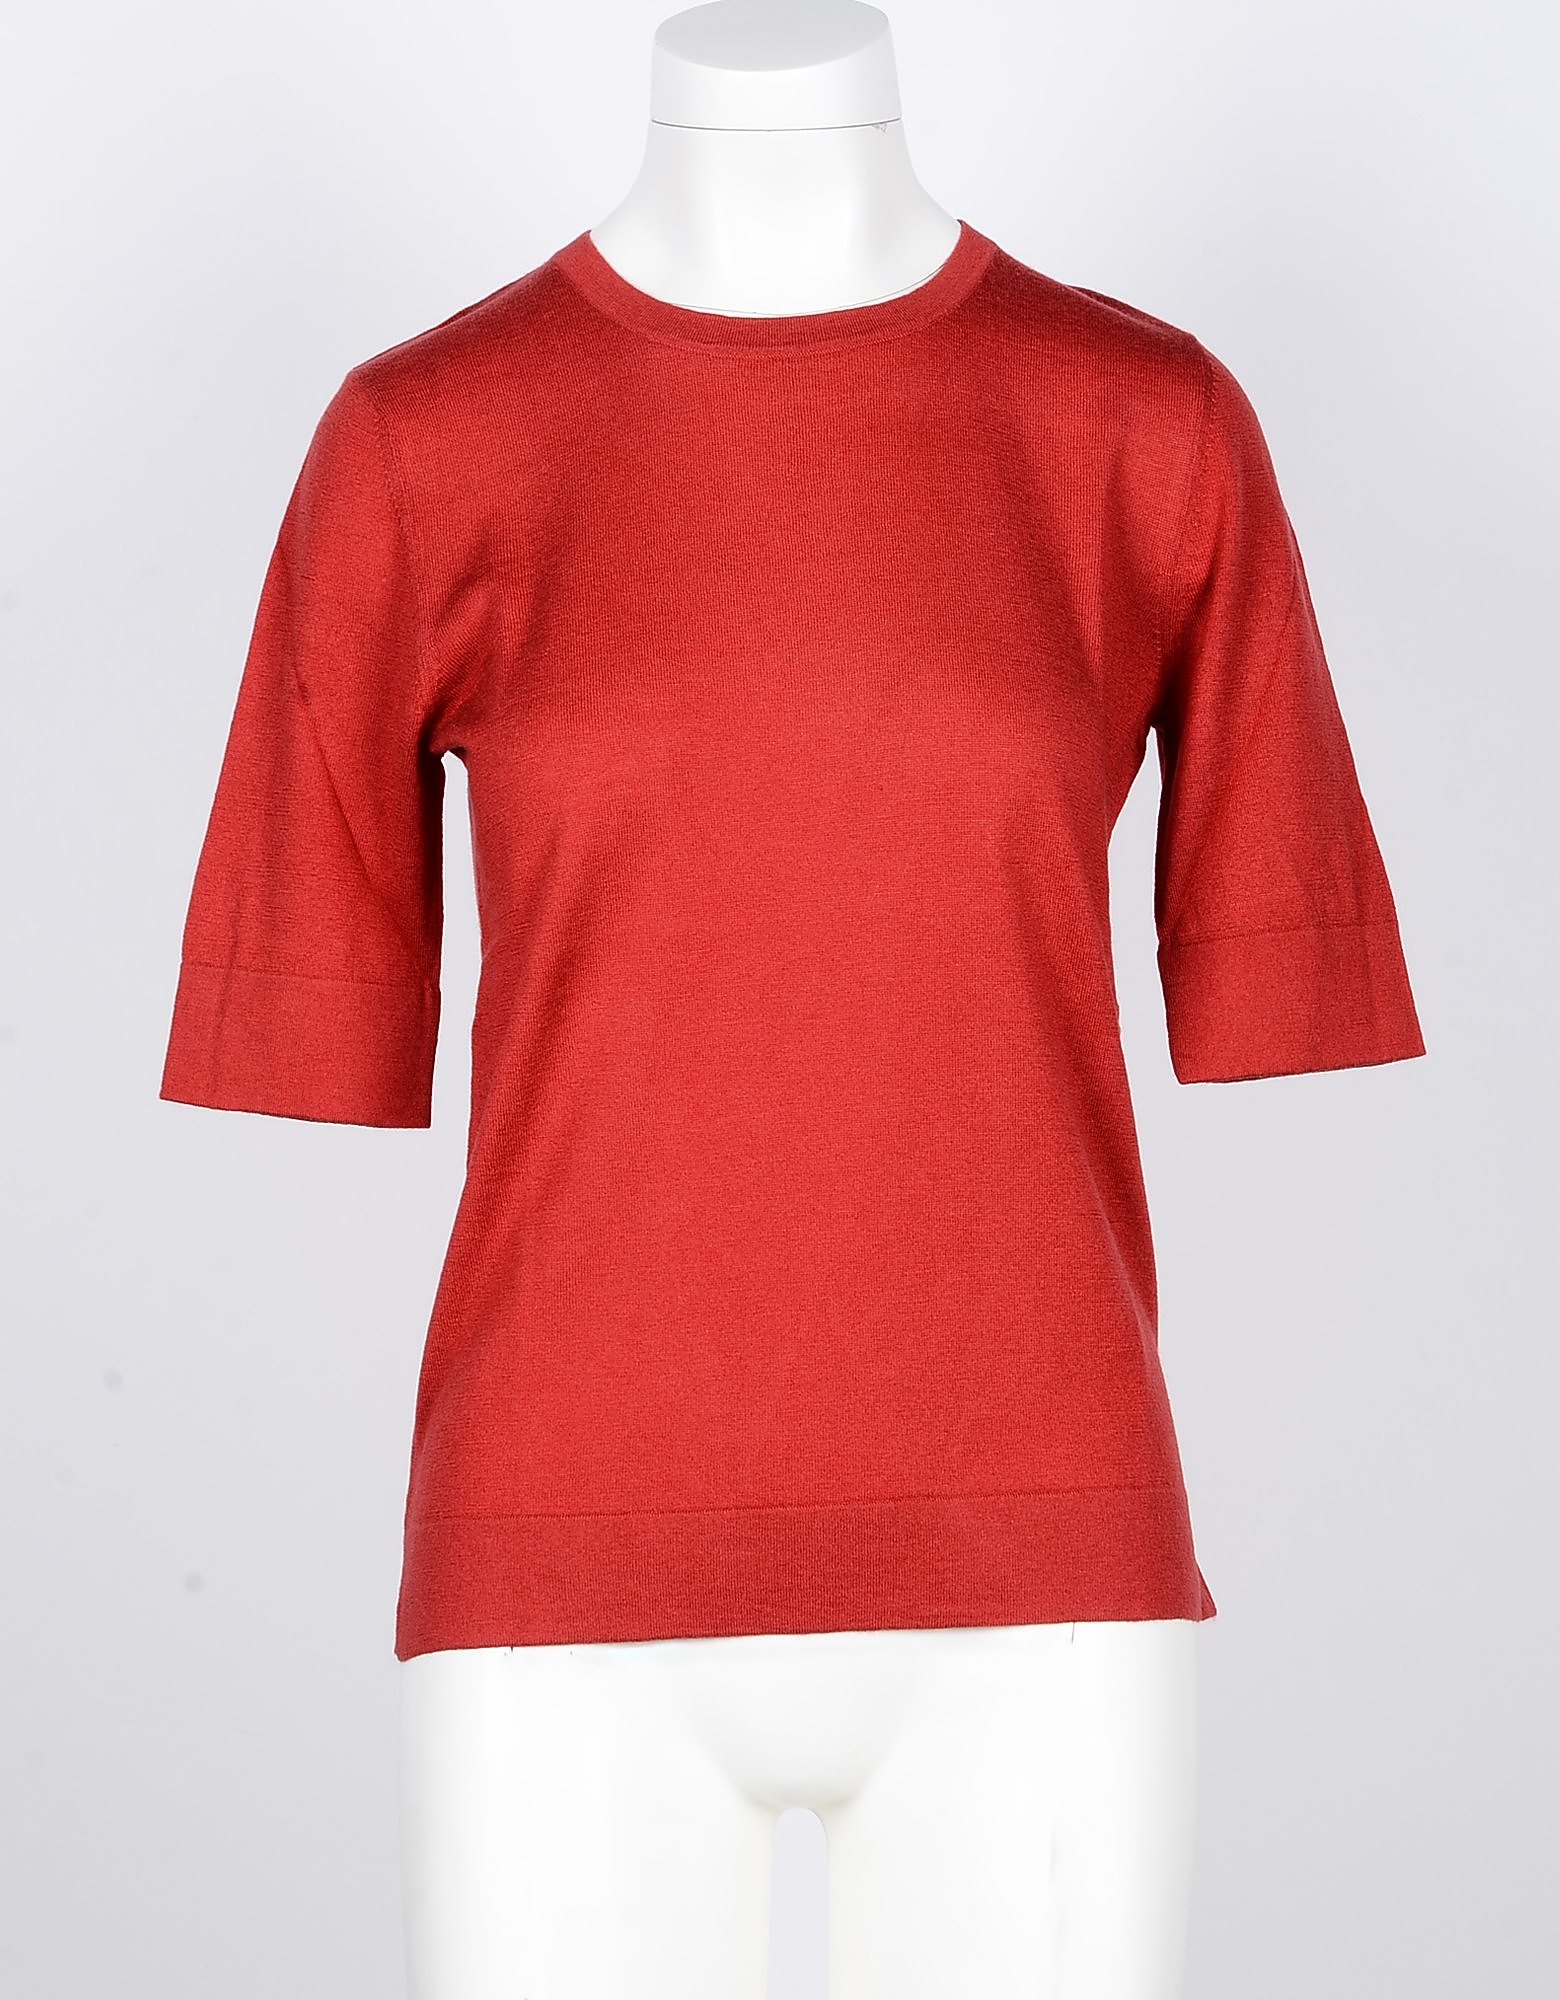 SNOBBY SHEEP Designer Knitwear, Red Silk and Cashmere Blend Women's Sweater with 3/4 Sleeve